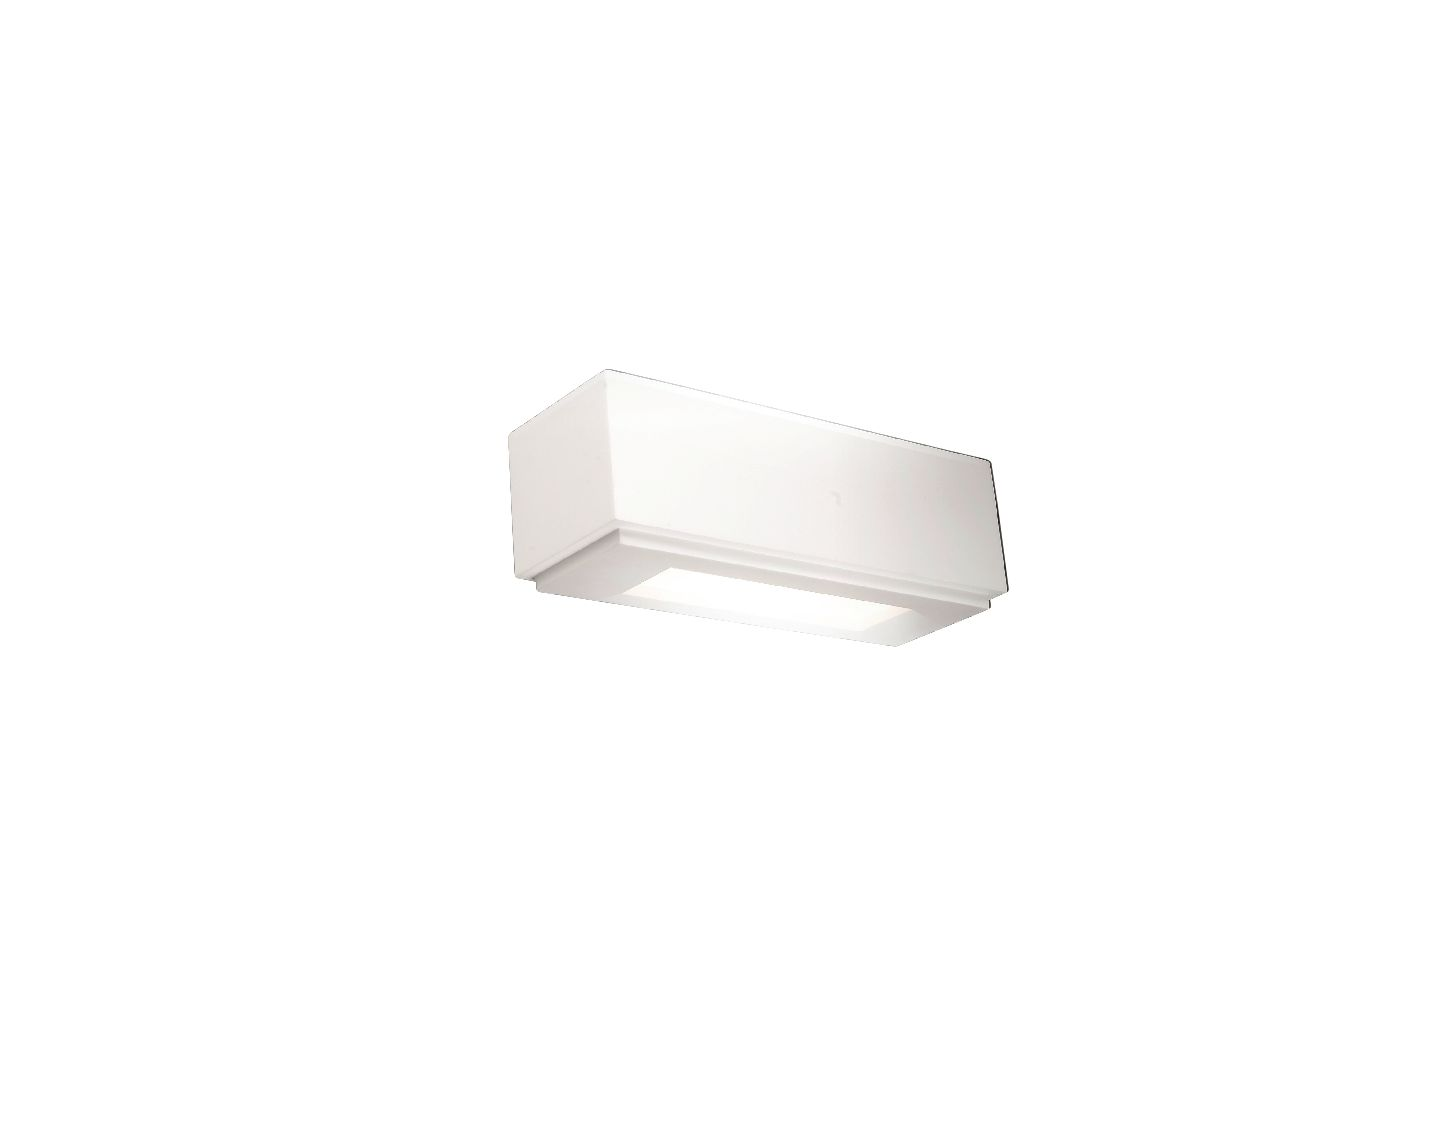 Wickes Garden Wall Lights : Wickes Murray Uplighter Wall Light Wickes.co.uk